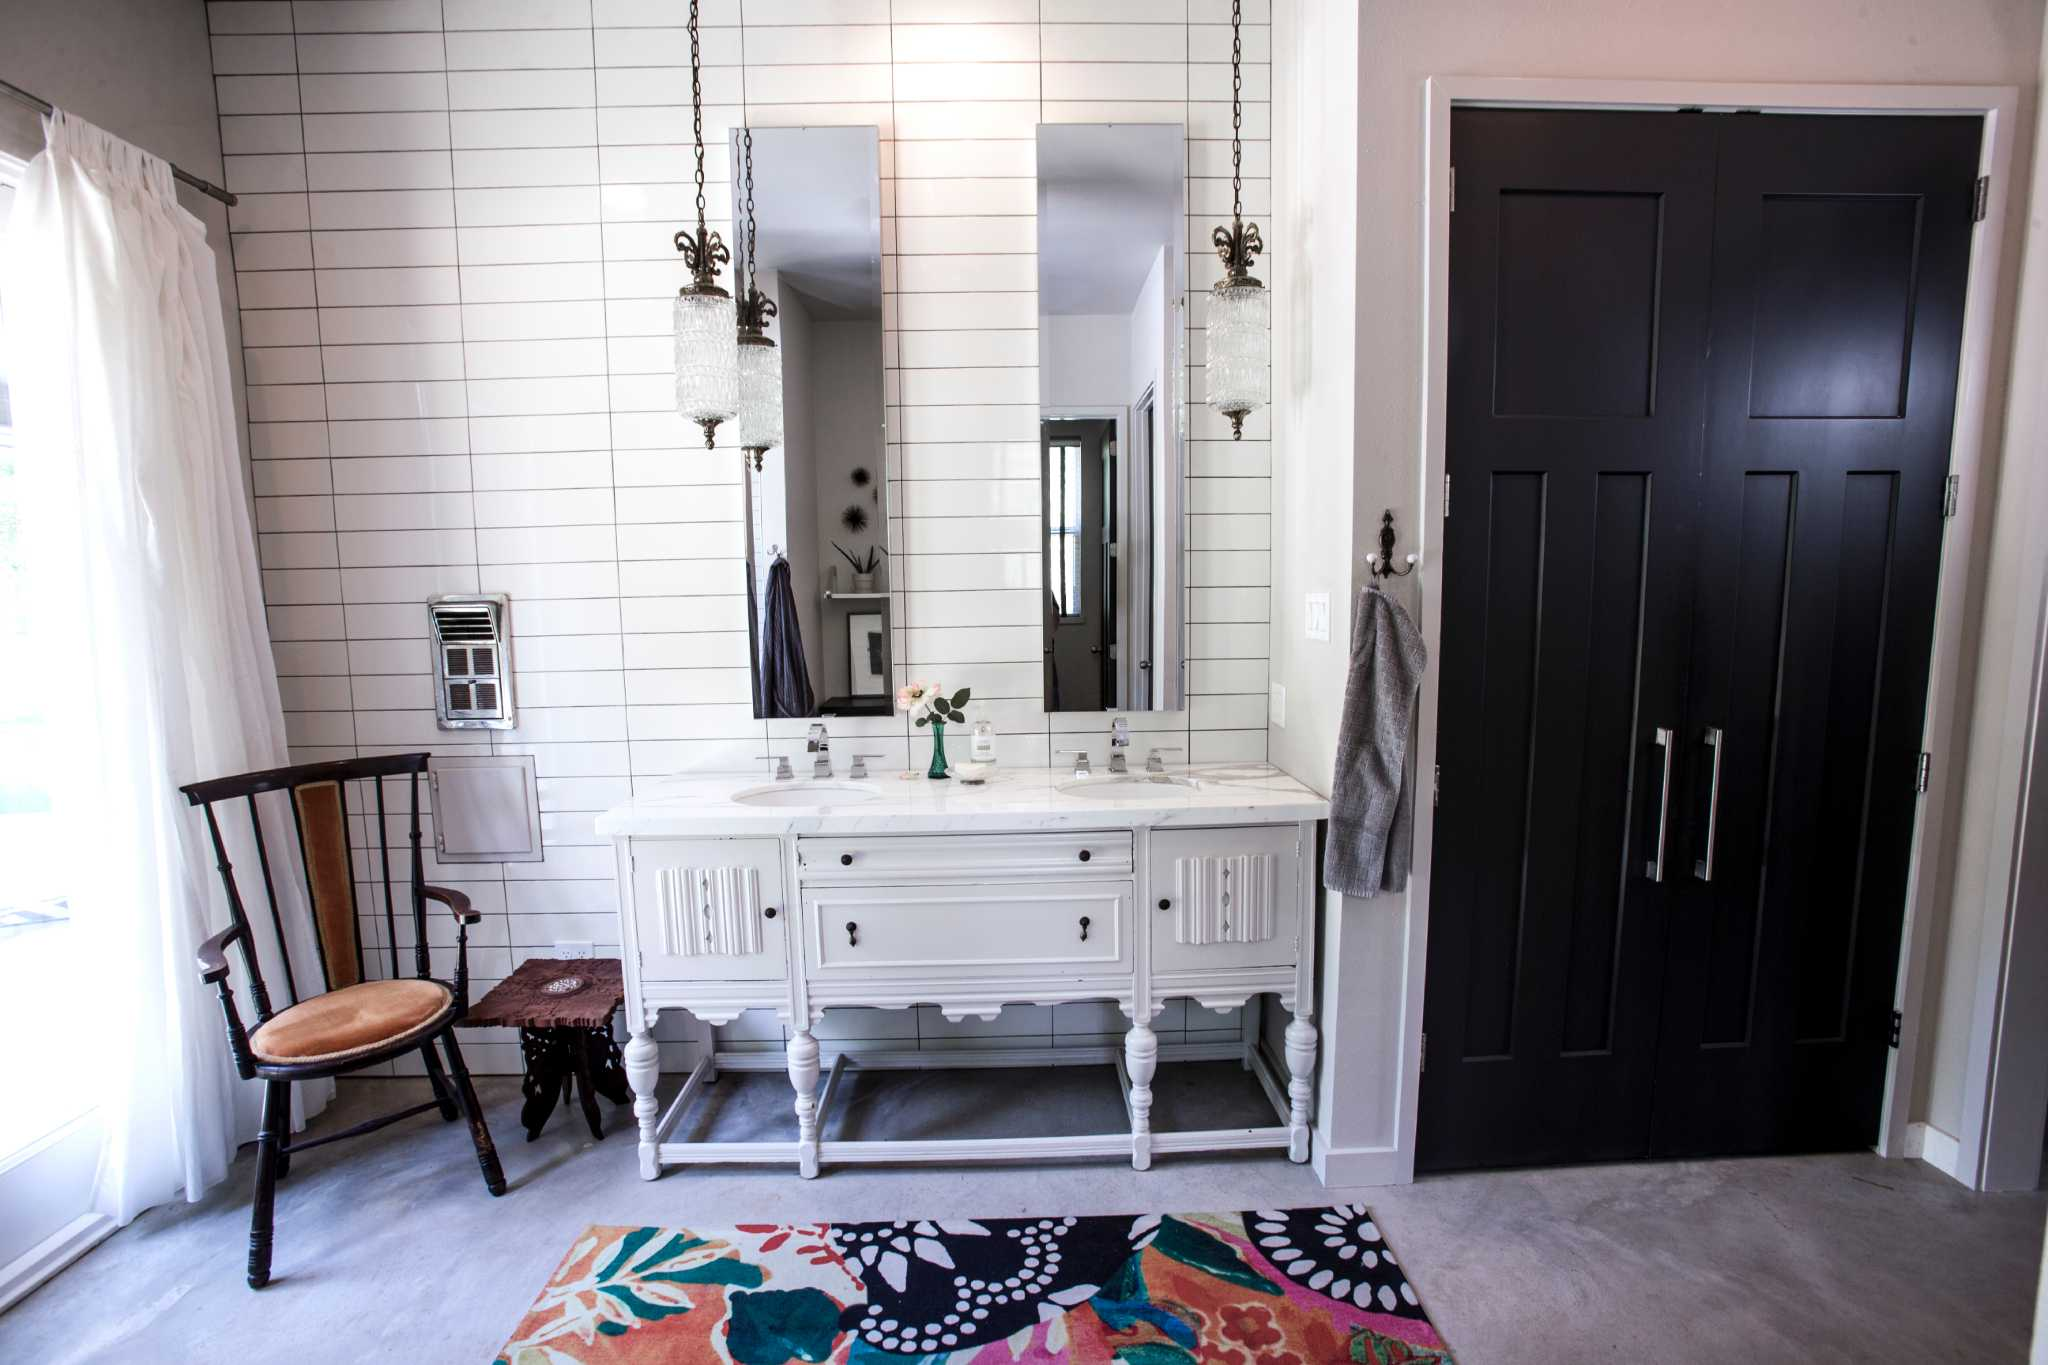 Bathroom design inspiration from your neighbors - Houston Chronicle